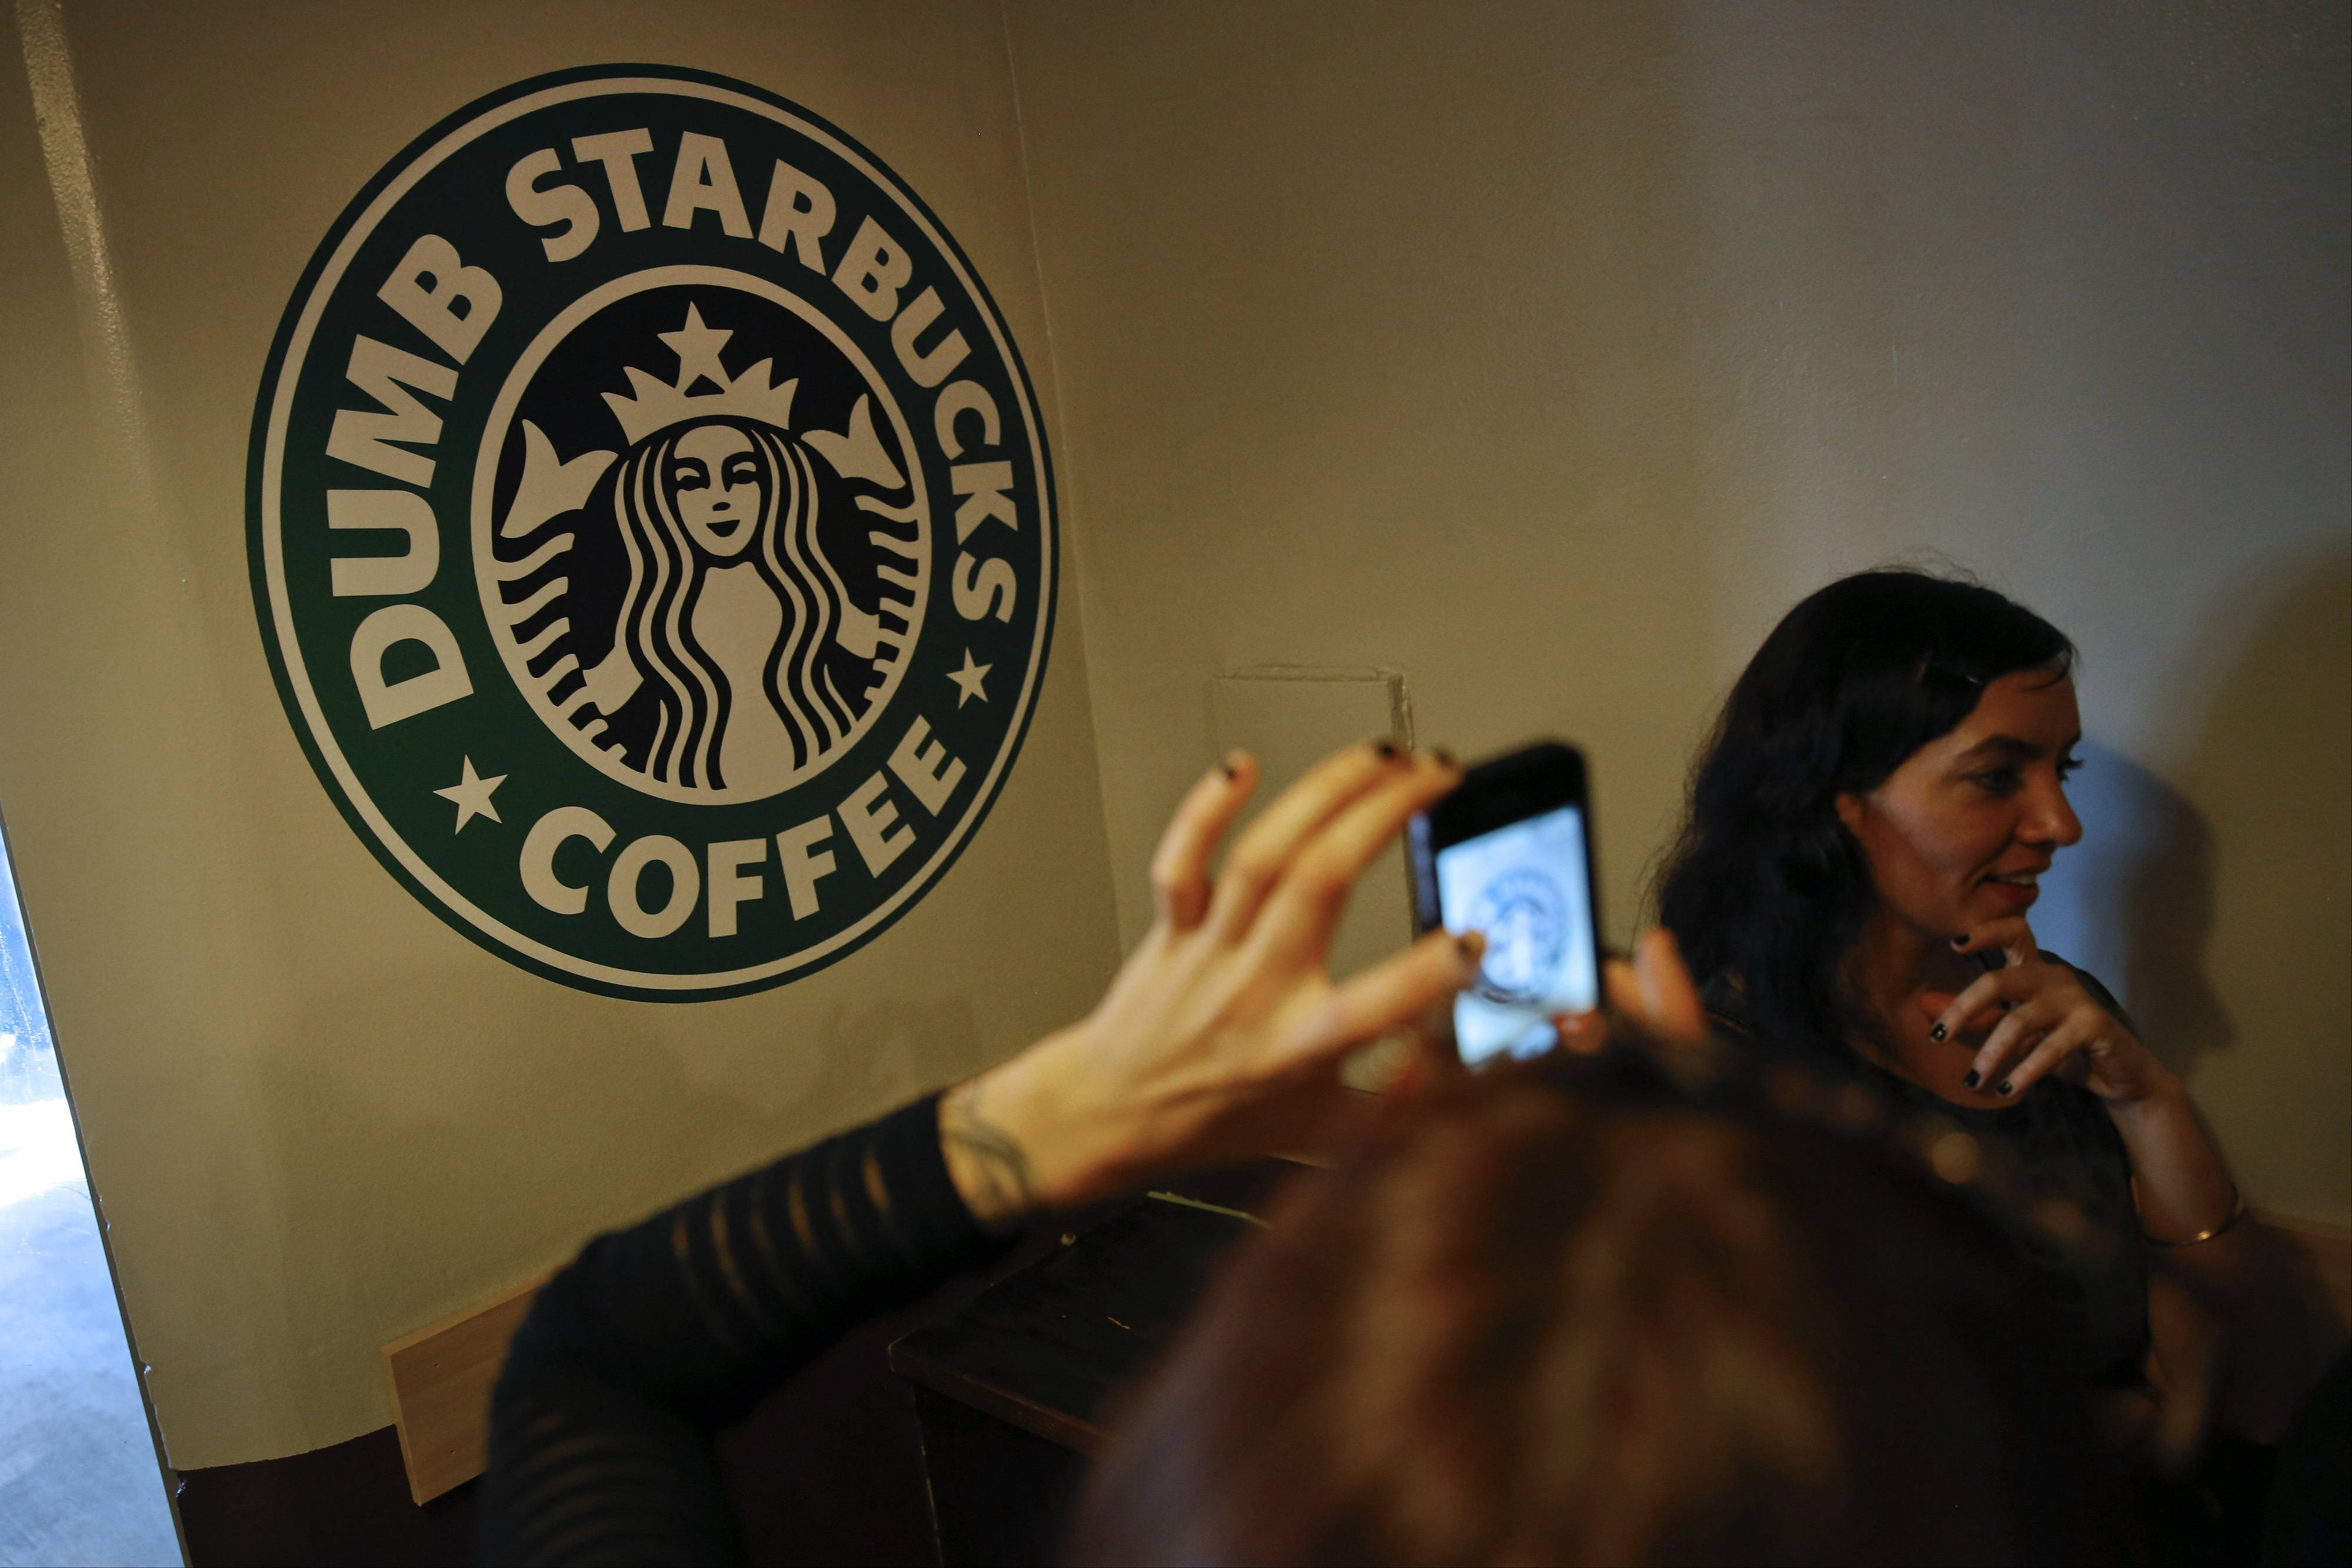 A customer photographs the Dumb Starbucks Coffee store, a parody of the Starbucks Corp. coffee chain, in Los Angeles on Monday. Dumb Starbucks, which opened this past weekend, offered Dumb Vanilla Blonde Roast, Dumb Chai Tea Latte and Dumb Caramel Macchiato, all available in sizes Dumb Venti, Dumb Grande, and Dumb Tall.